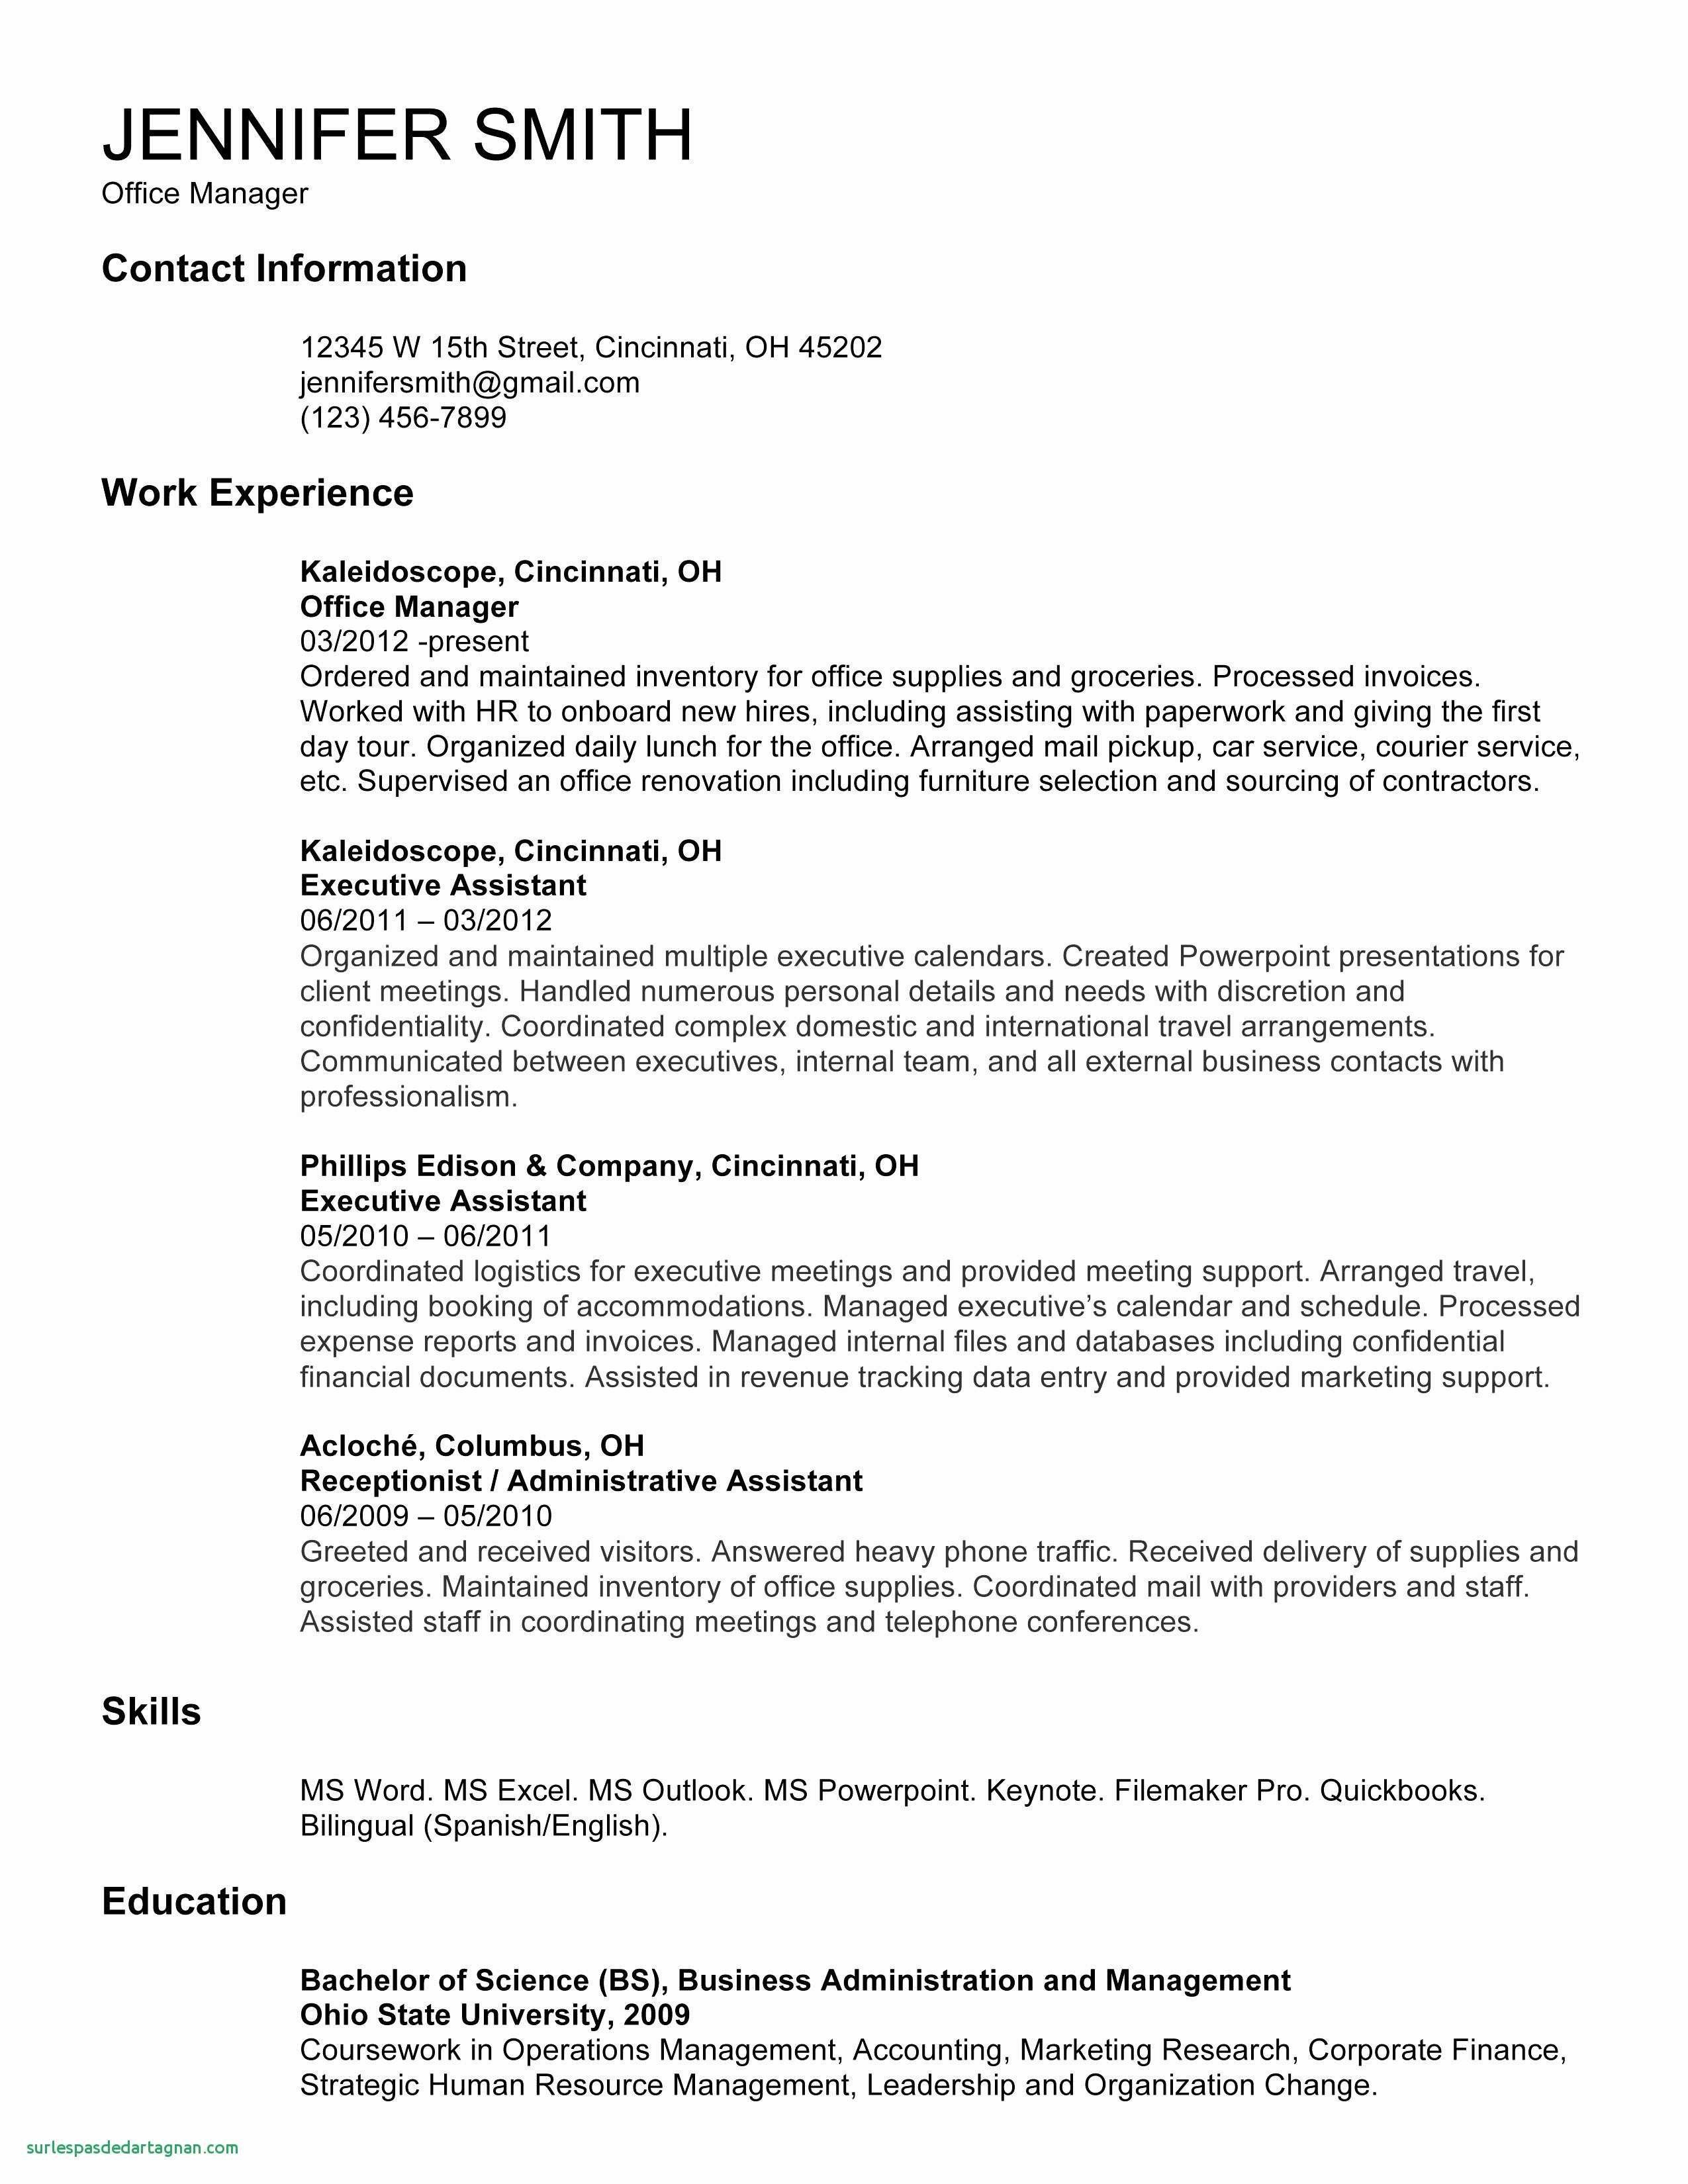 Receptionist Resume Template Free - Resume Template Download Free Unique ¢Ë†Å¡ Resume Template Download